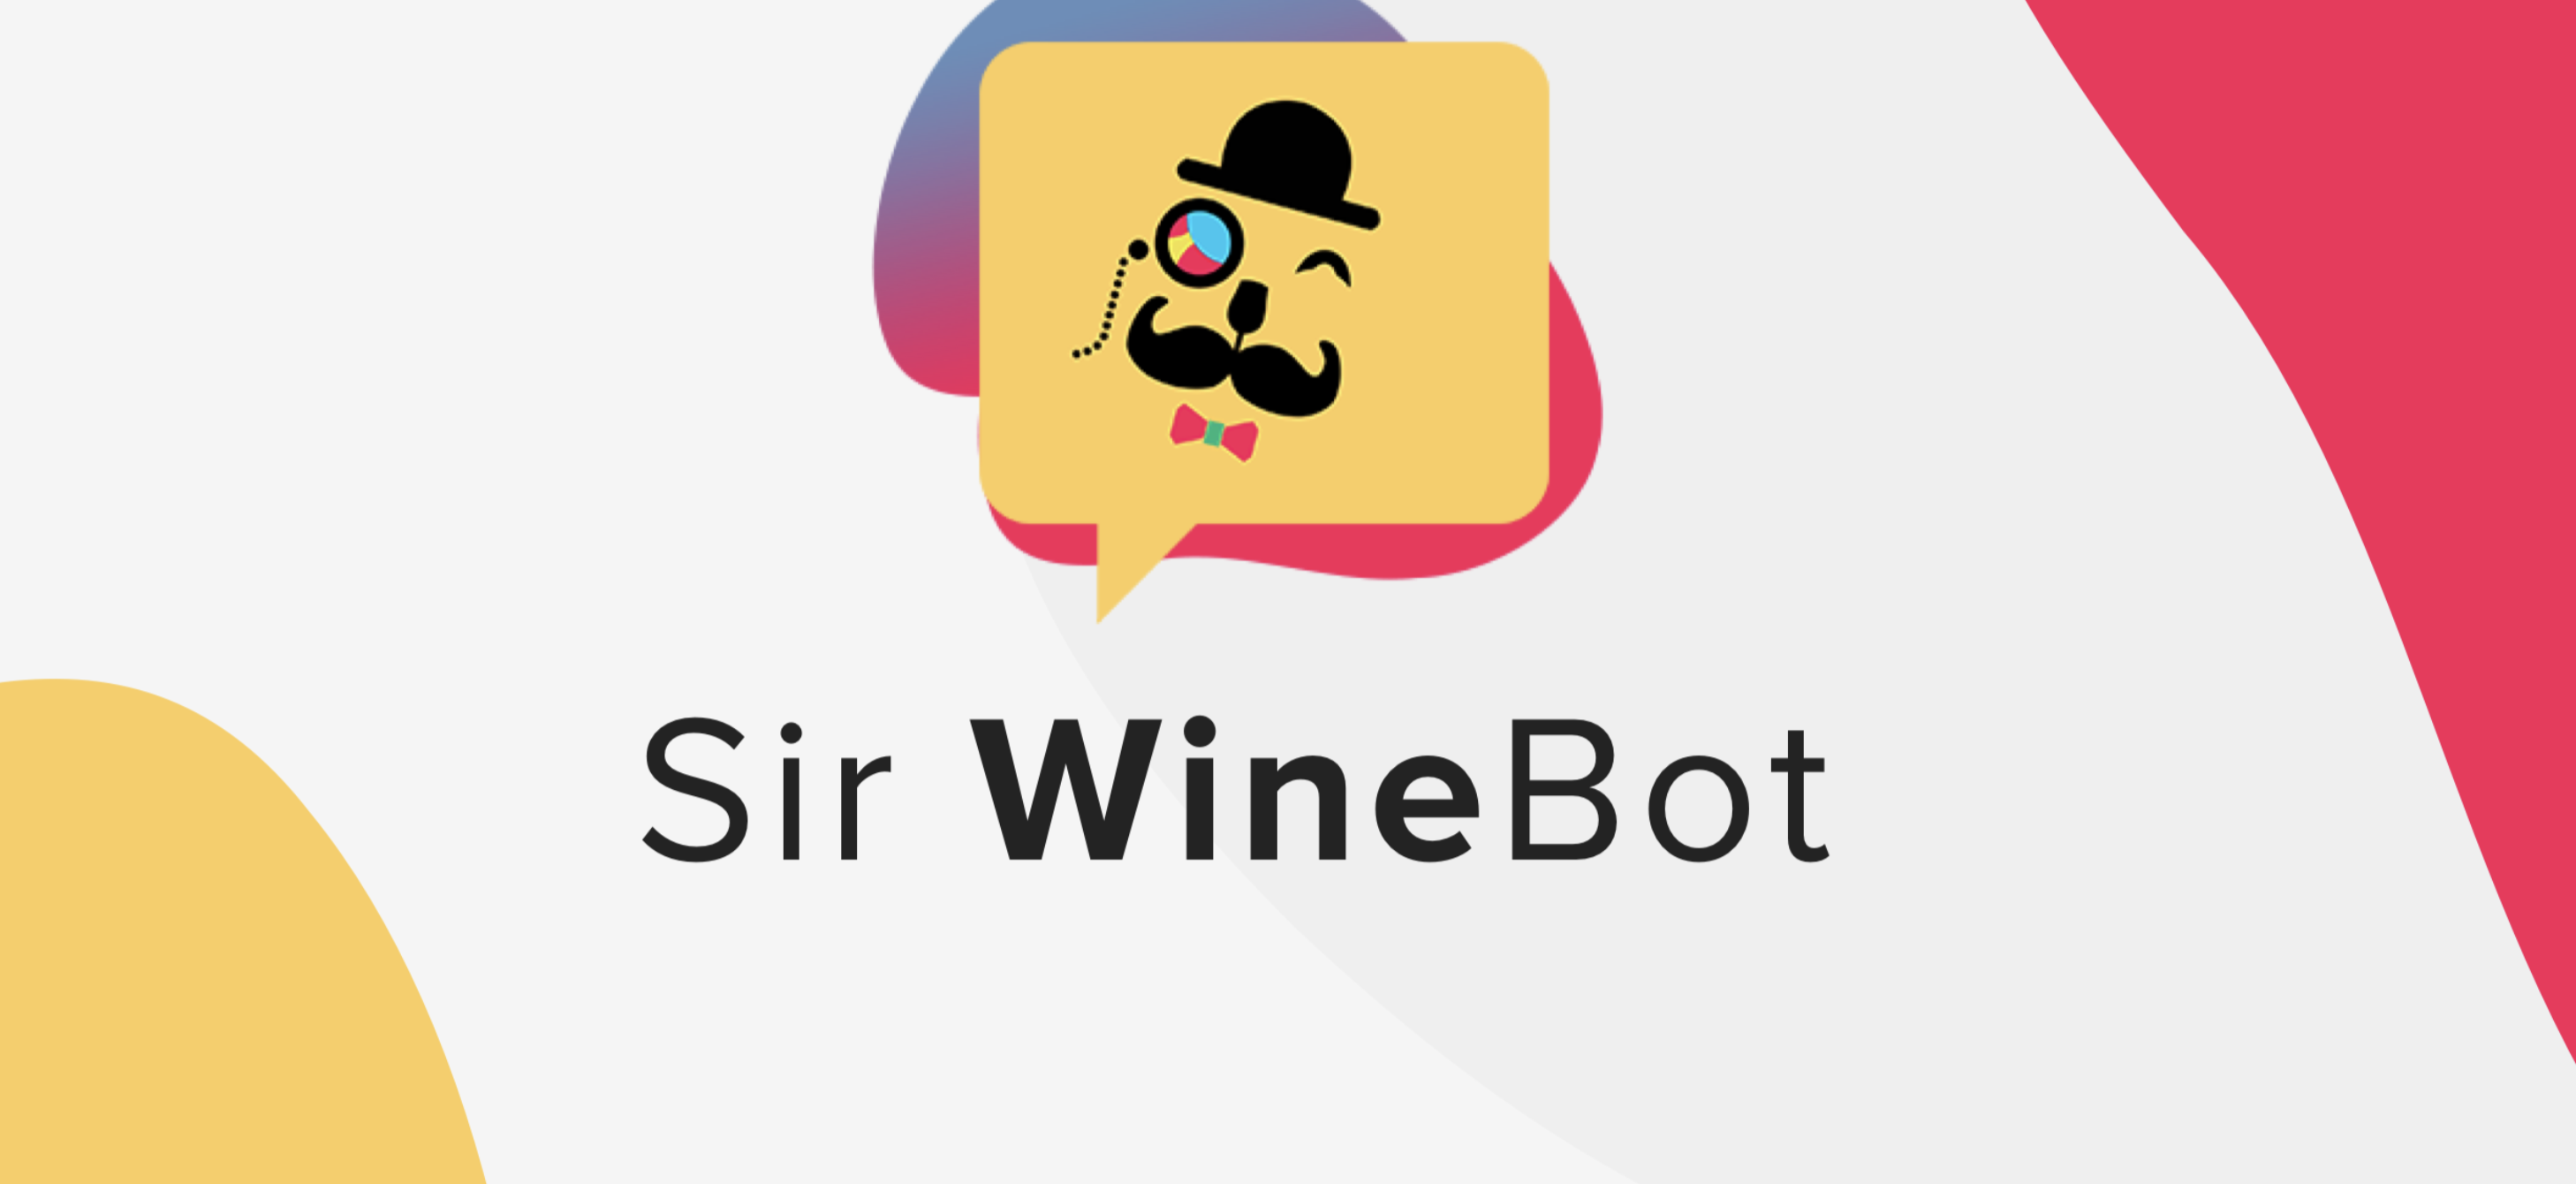 Image of Sir WineBot logo, https://www.deskree.studio/works/sir-winebot